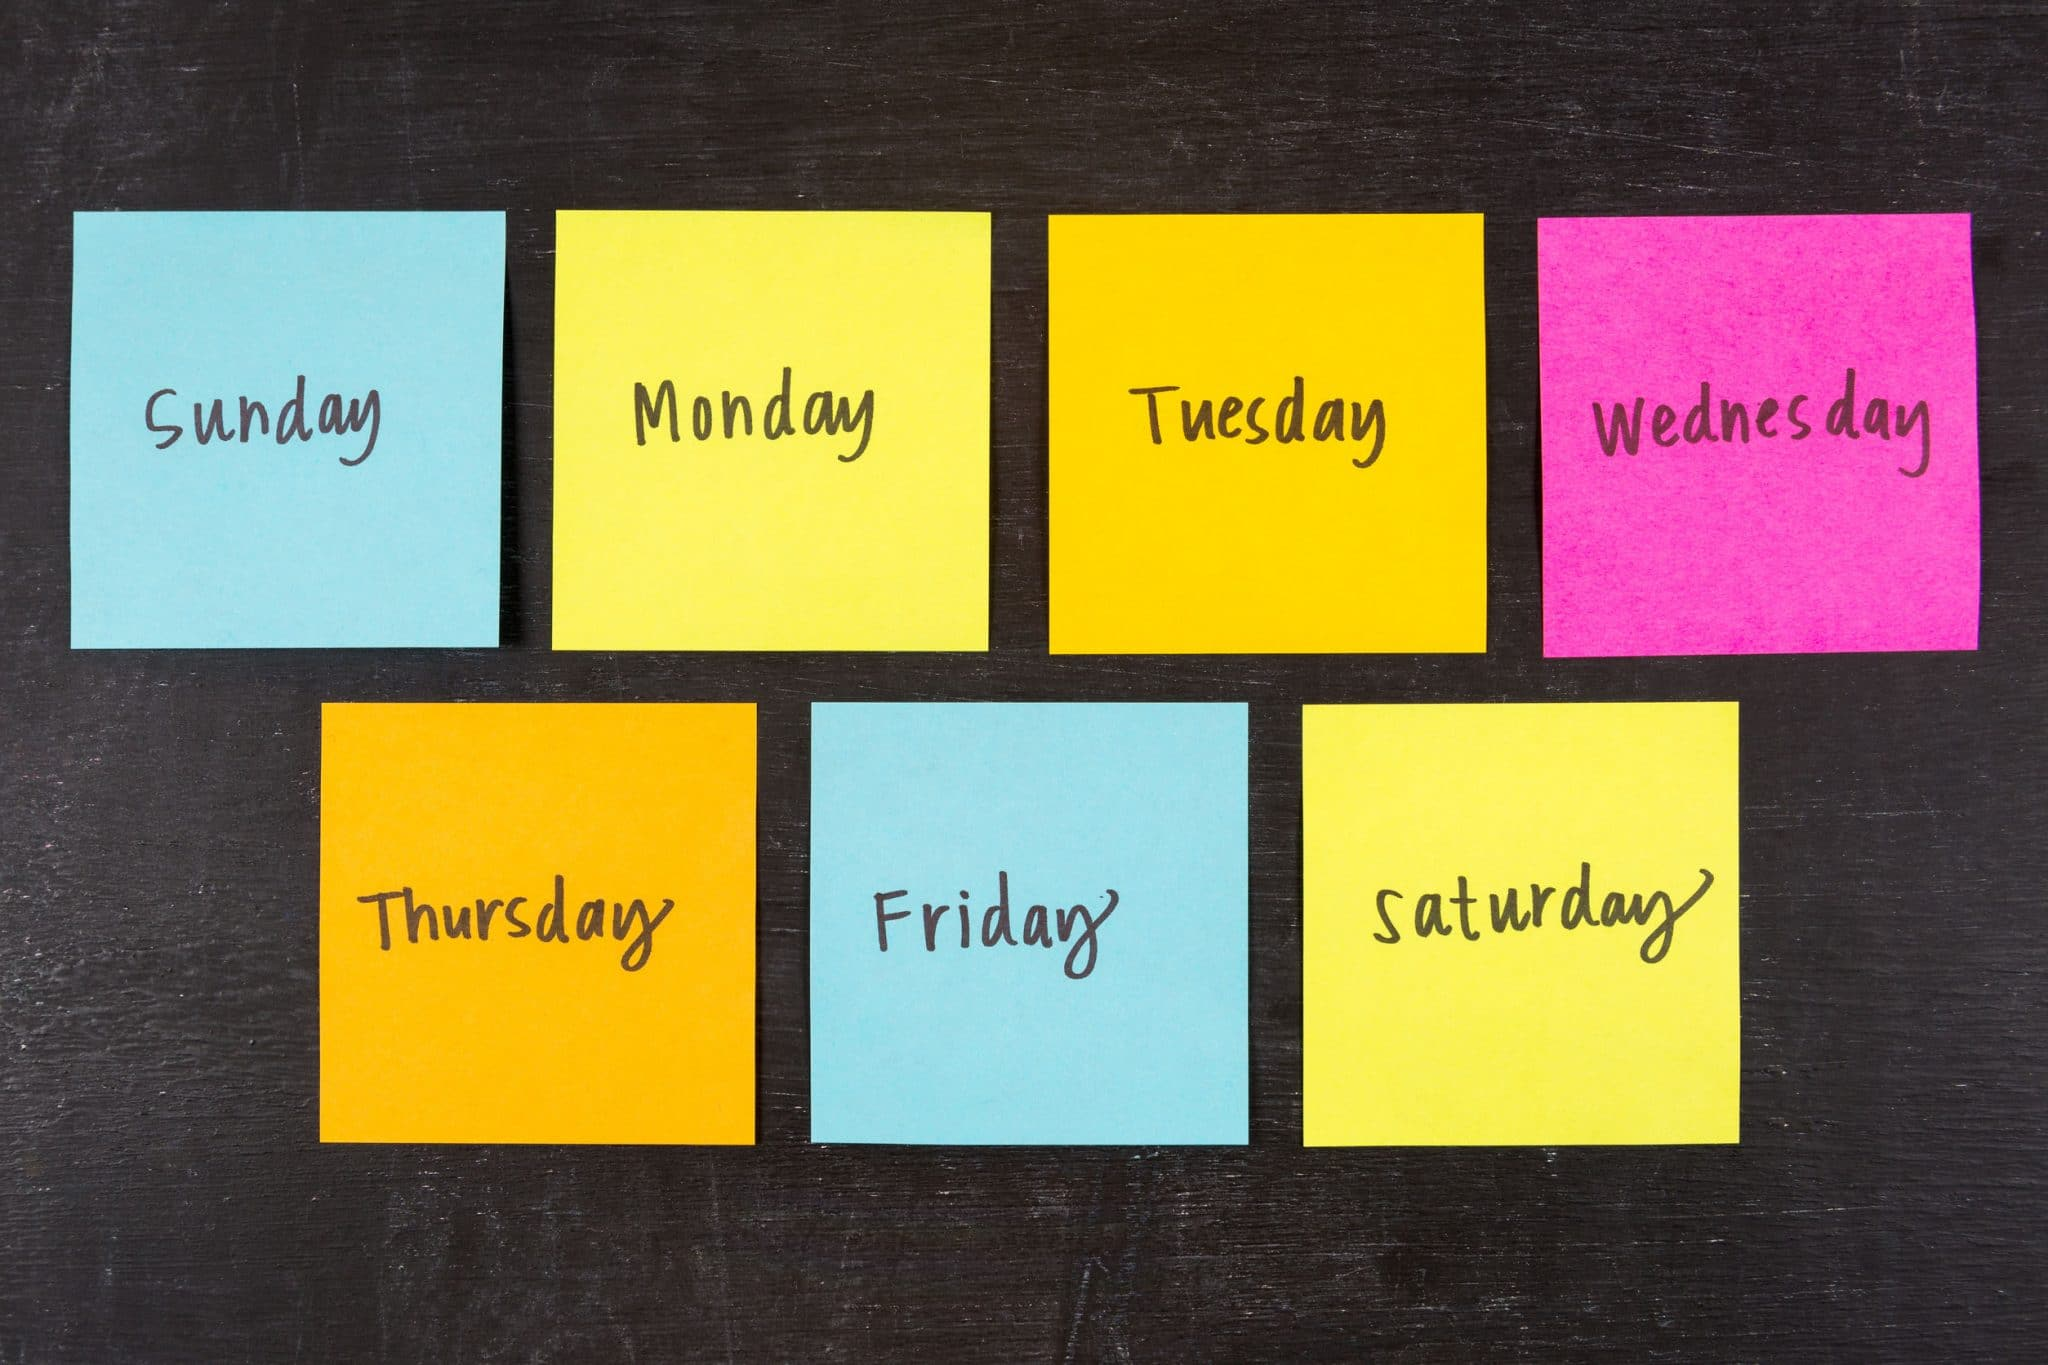 Social Media Trends For Every Day Of The Week